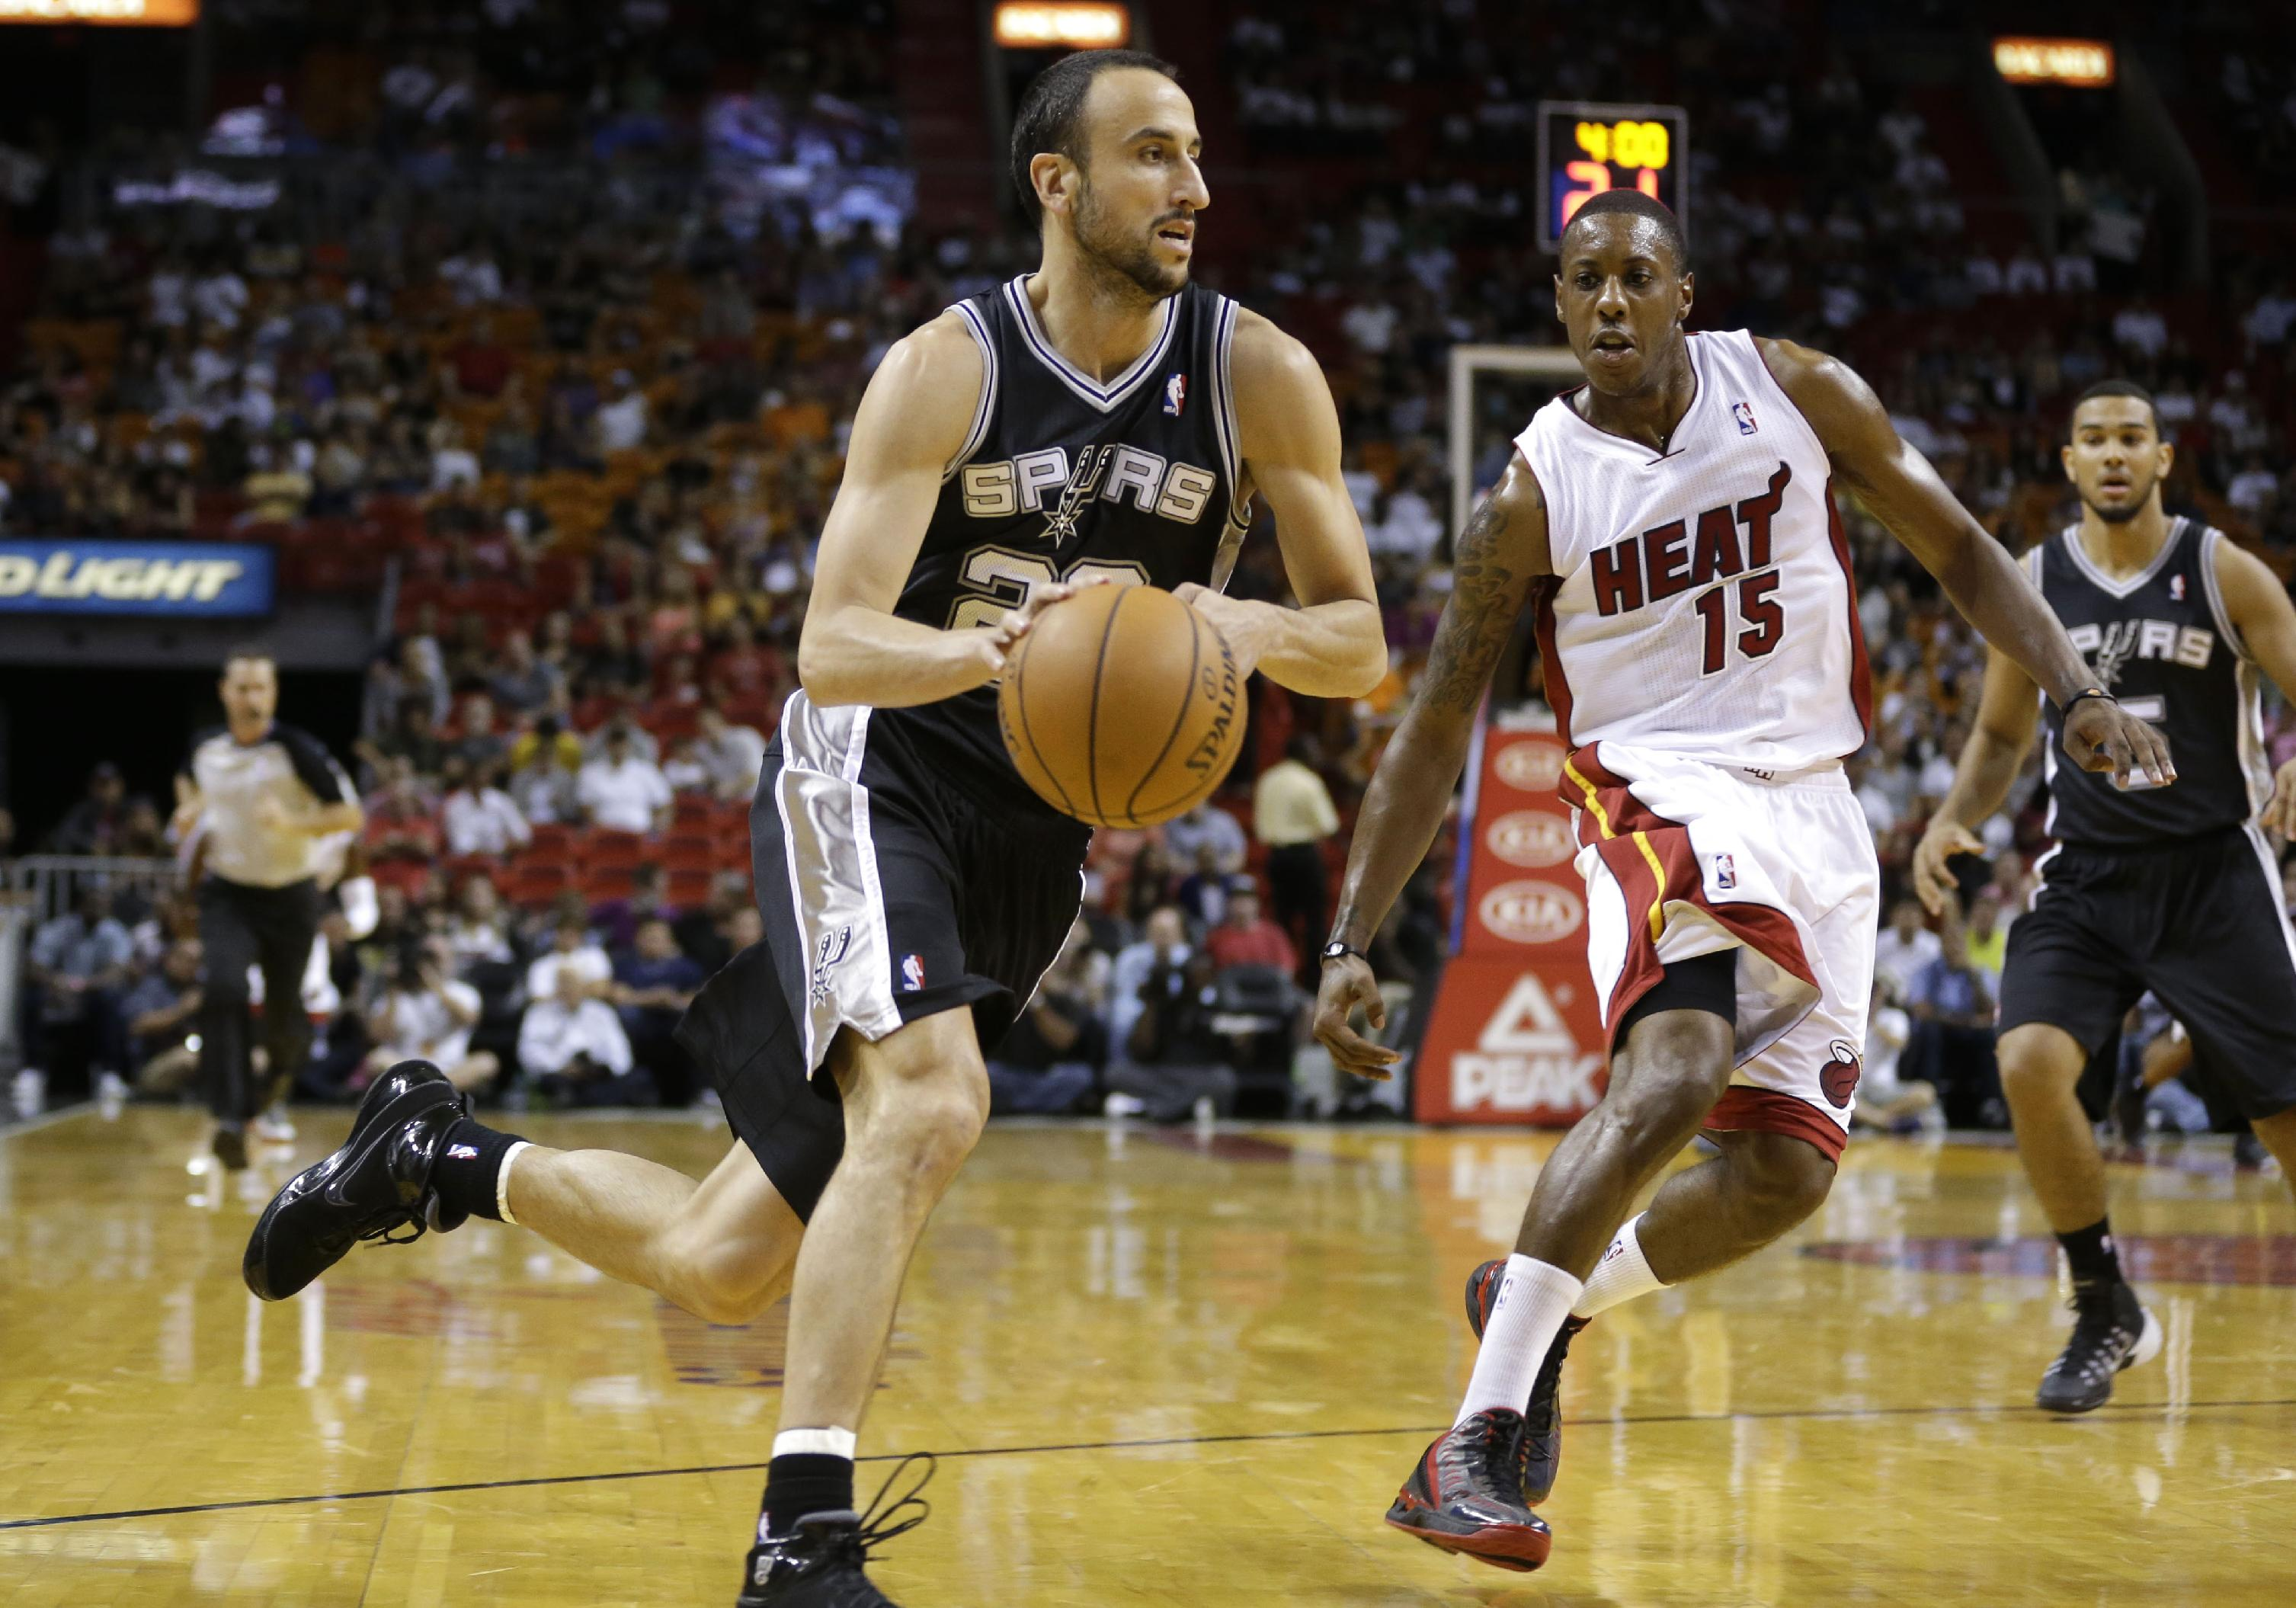 San Antonio Spurs' Manu Ginobili, left, drives to the basket past Miami Heat's Mario Chalmers (15) during the first half of an NBA preseason basketball game, Saturday, Oct. 19, 2013, in Miami